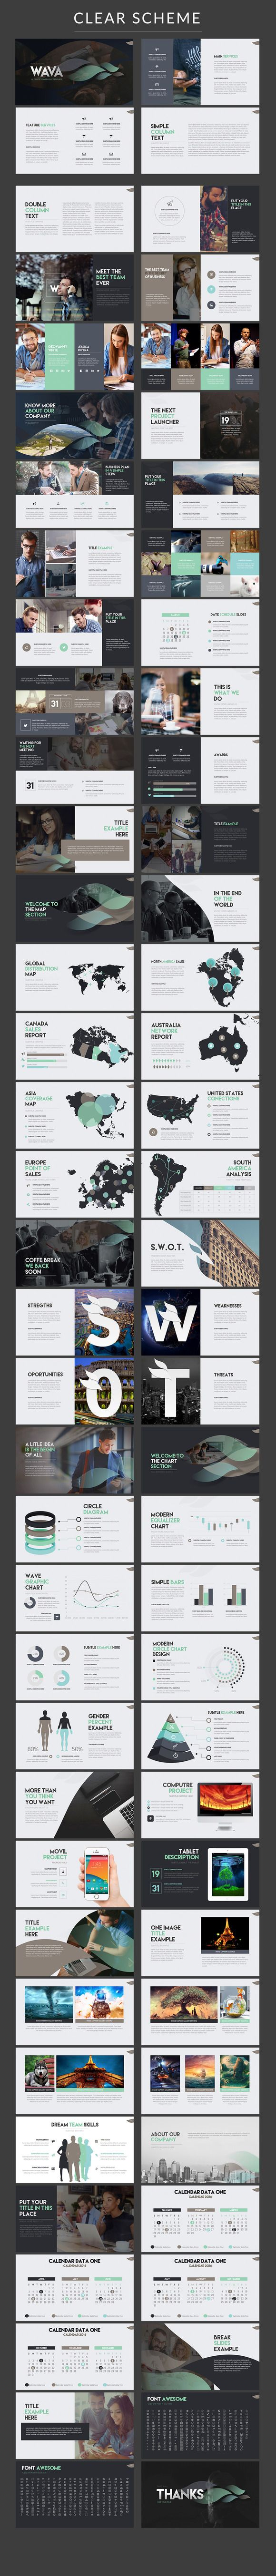 presentation booklet templates